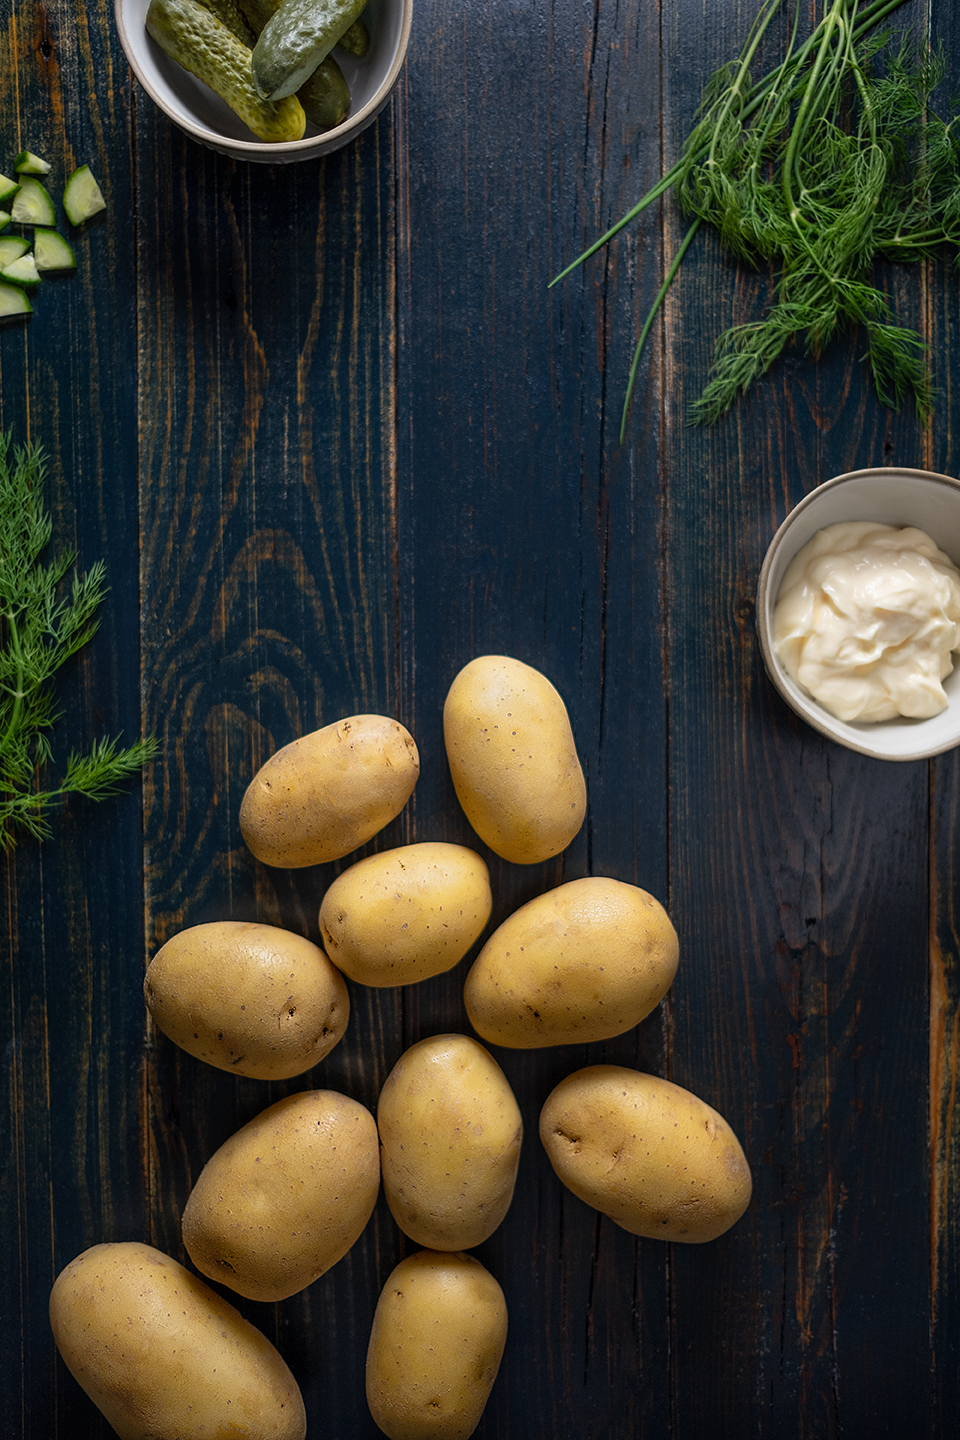 retouched yukon gold potatoes on wooden table with potato salad ingredients